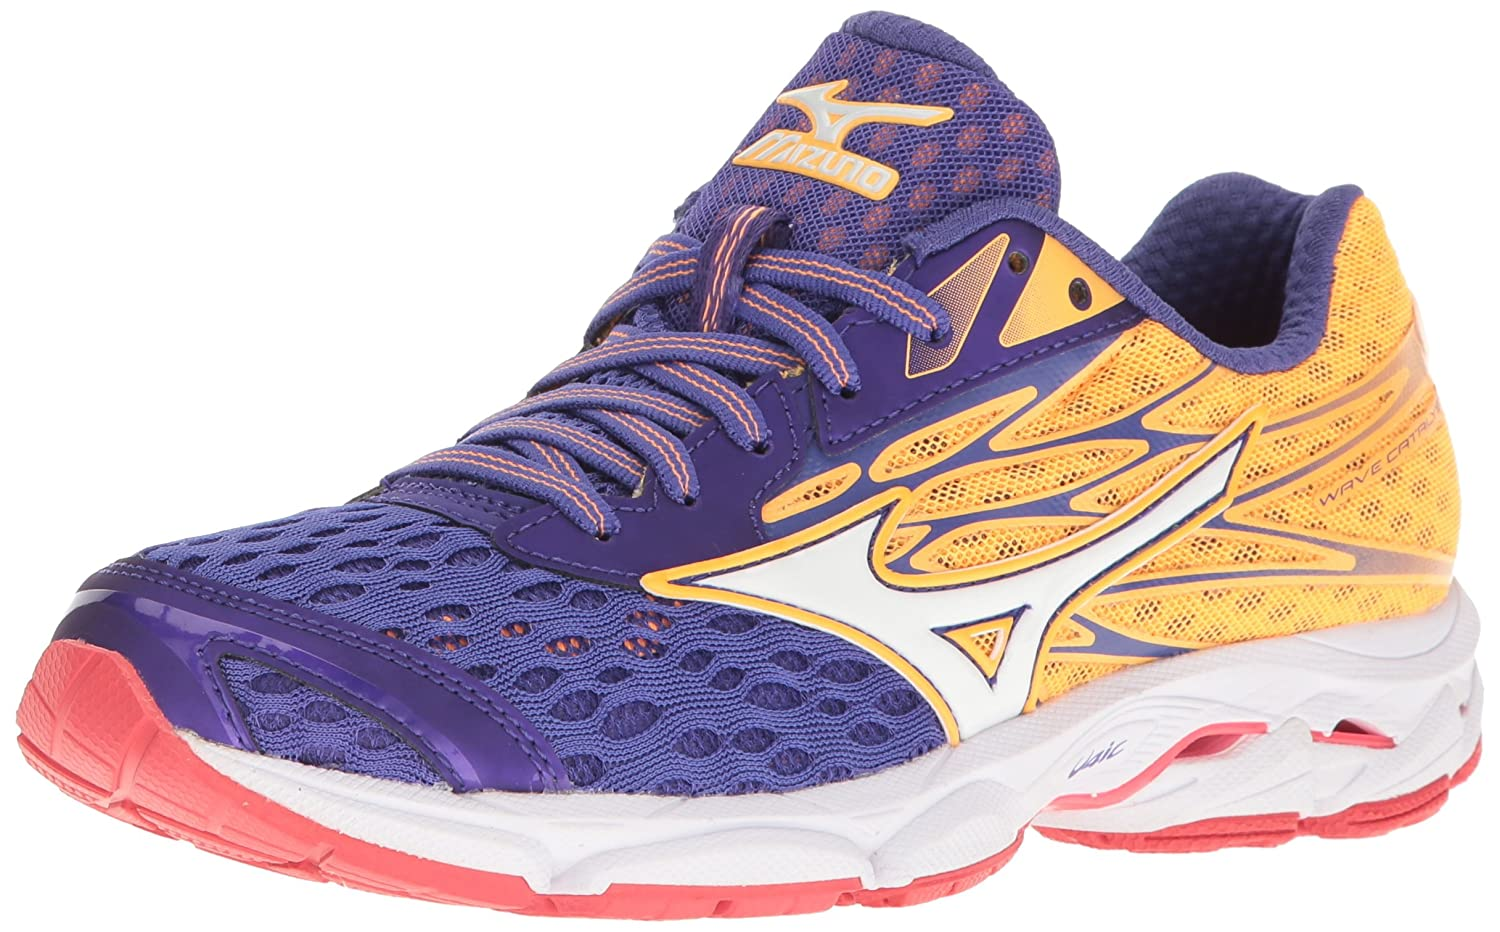 Mizuno Women's Wave Catalyst 2 Running Shoe B01H3EG2YI 10 B(M) US|Purple/Orange Popsicle